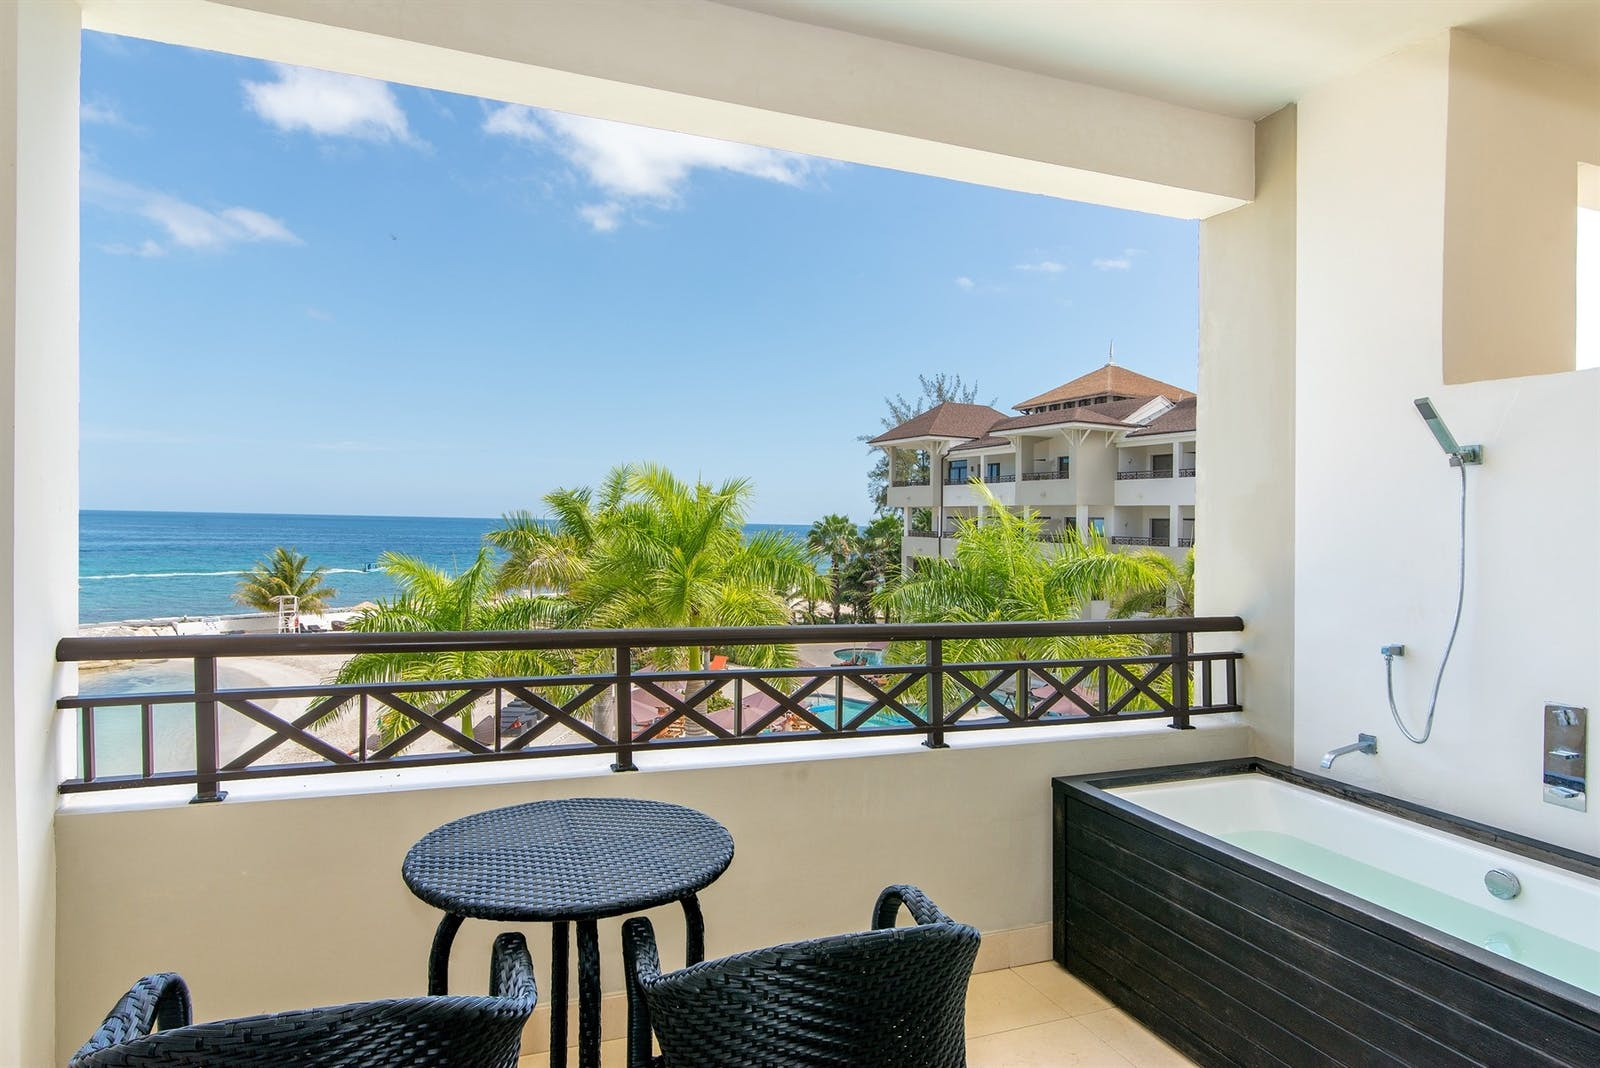 Suite Balcony at Secrets Wild Orchid Montego Bay, Jamaica